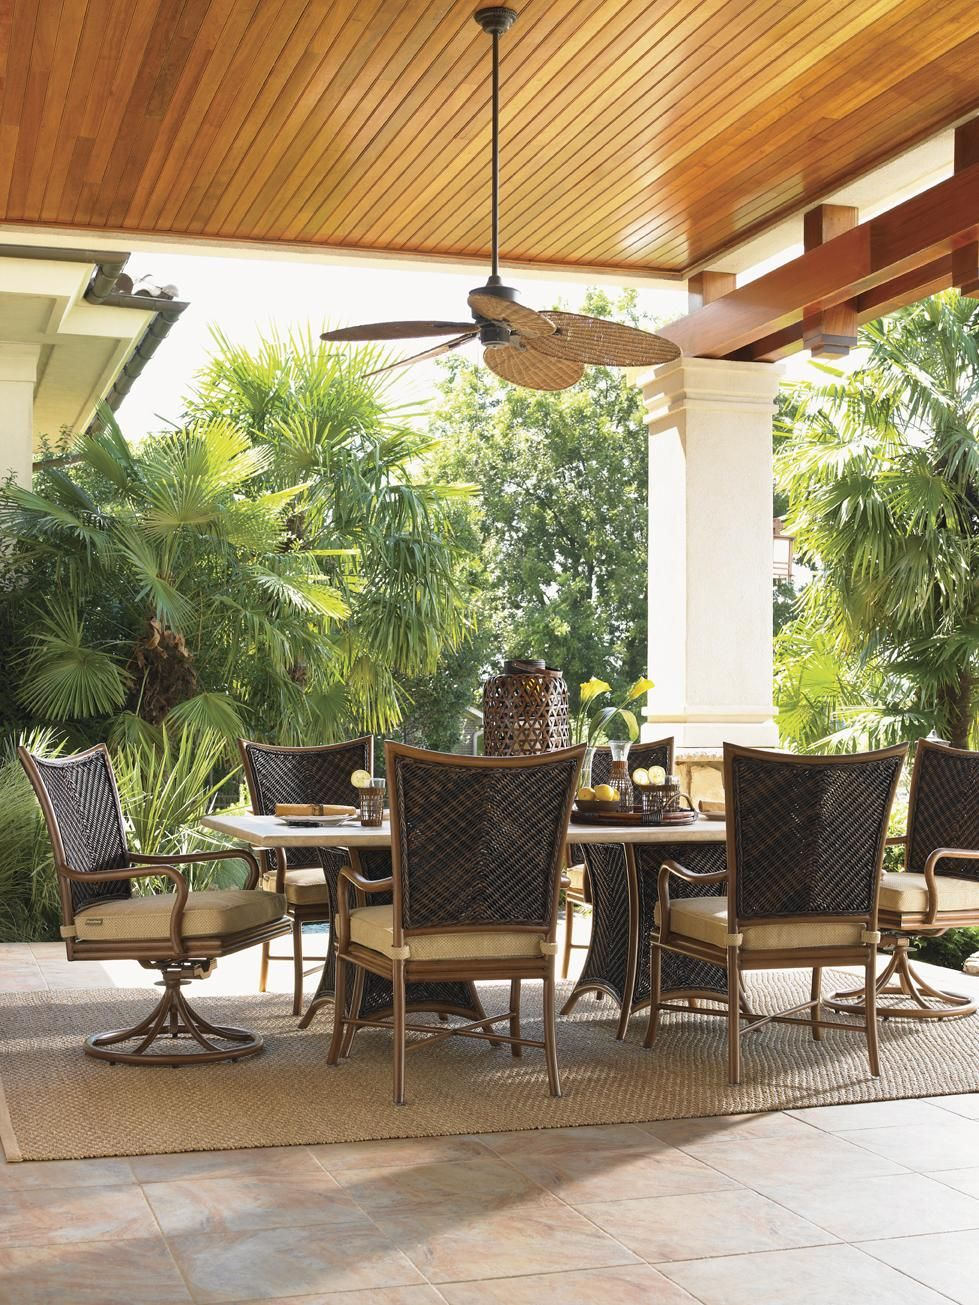 Island Estate Lanai 3170 By Tommy Bahama Outdoor Living Baer S